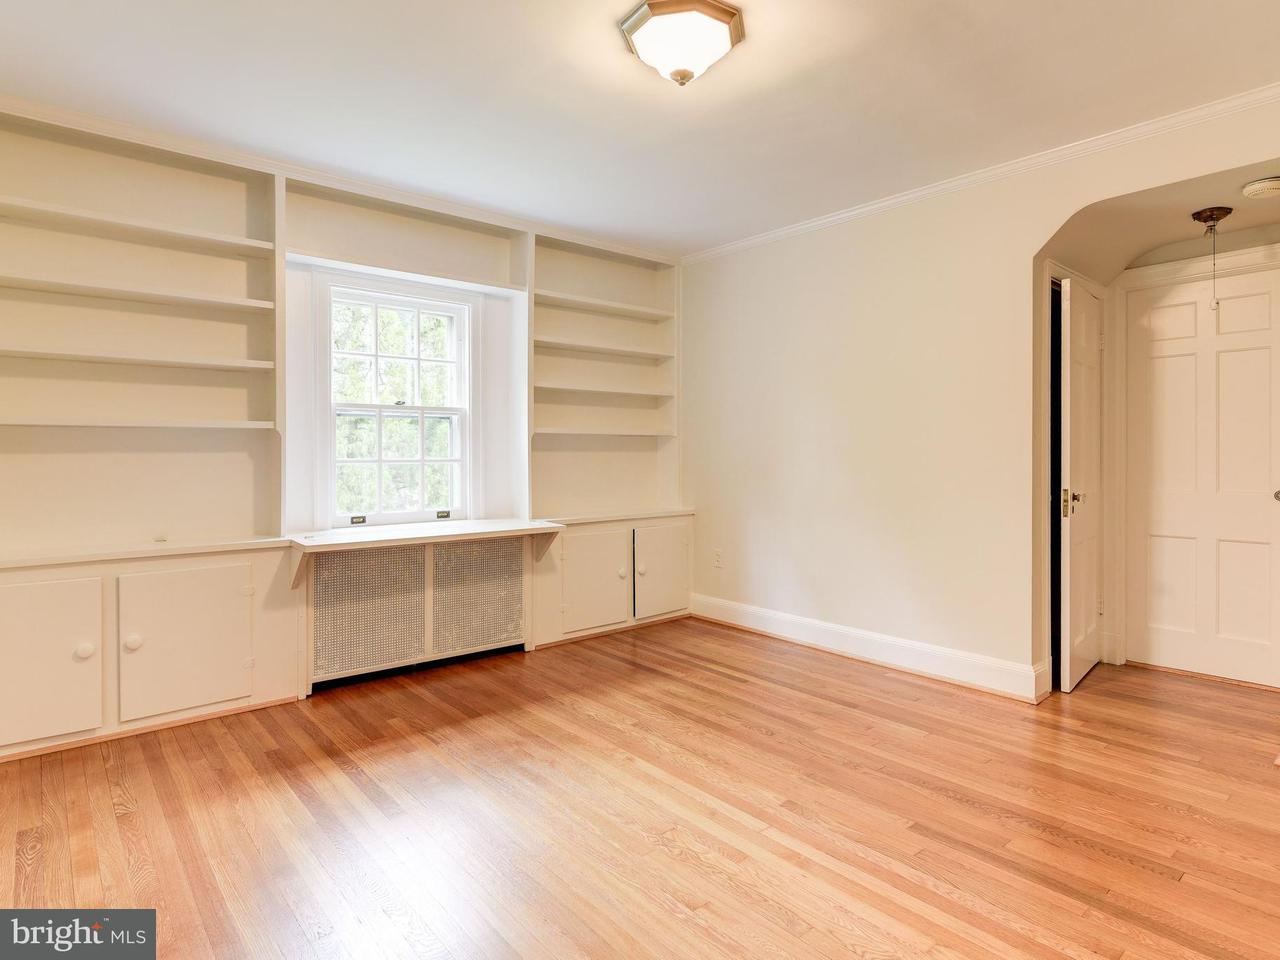 Additional photo for property listing at 2007 Plymouth St Nw 2007 Plymouth St Nw Washington, 哥倫比亞特區 20012 美國